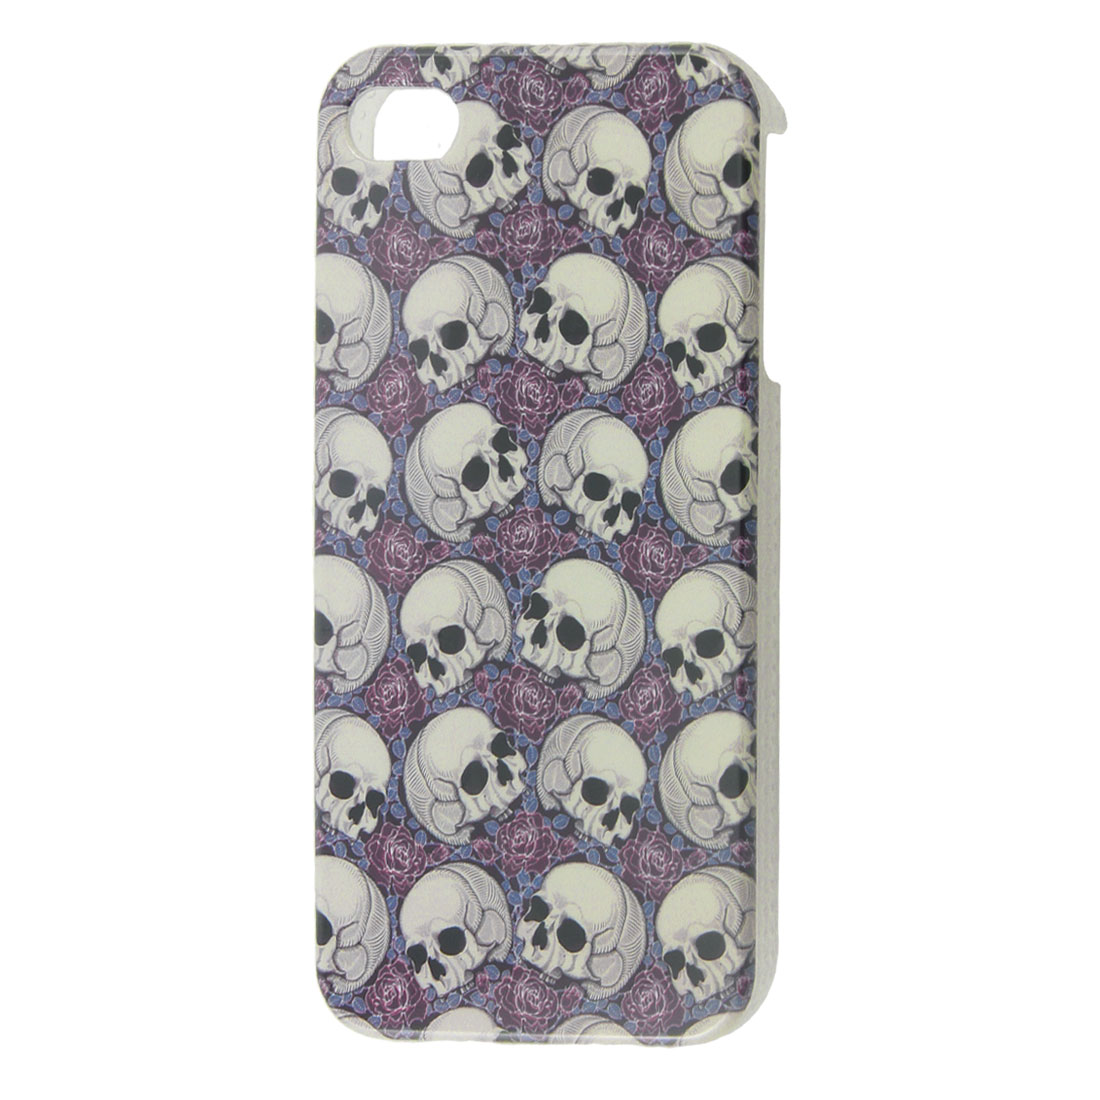 Grey Skull Pattern IMD Hard Plastic Back Guard for iPhone 4 4G 4S